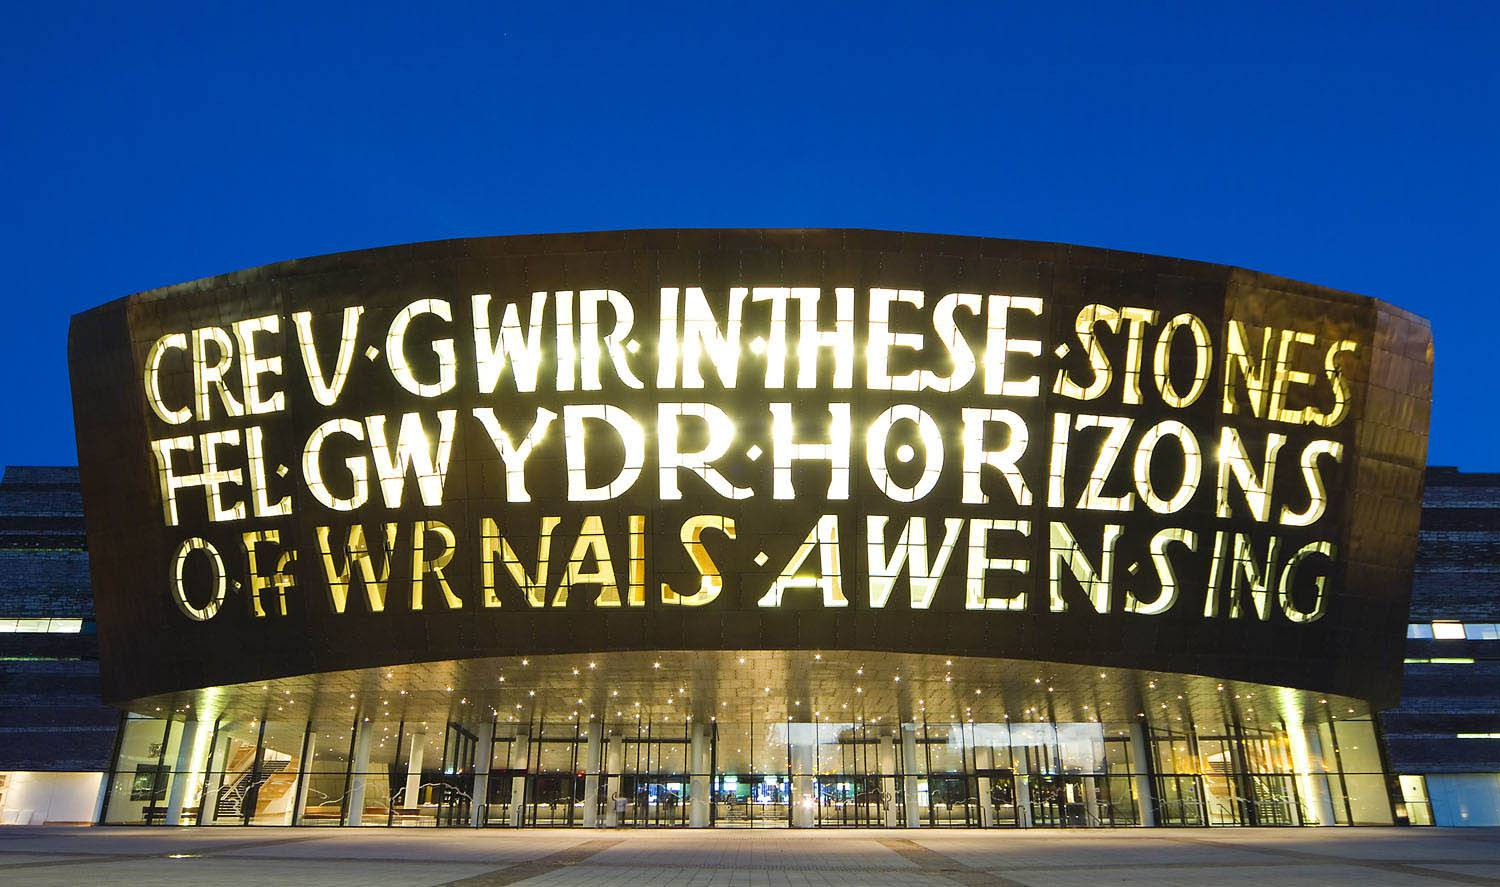 Wales Millennium Centre ,best places to visit in the UK